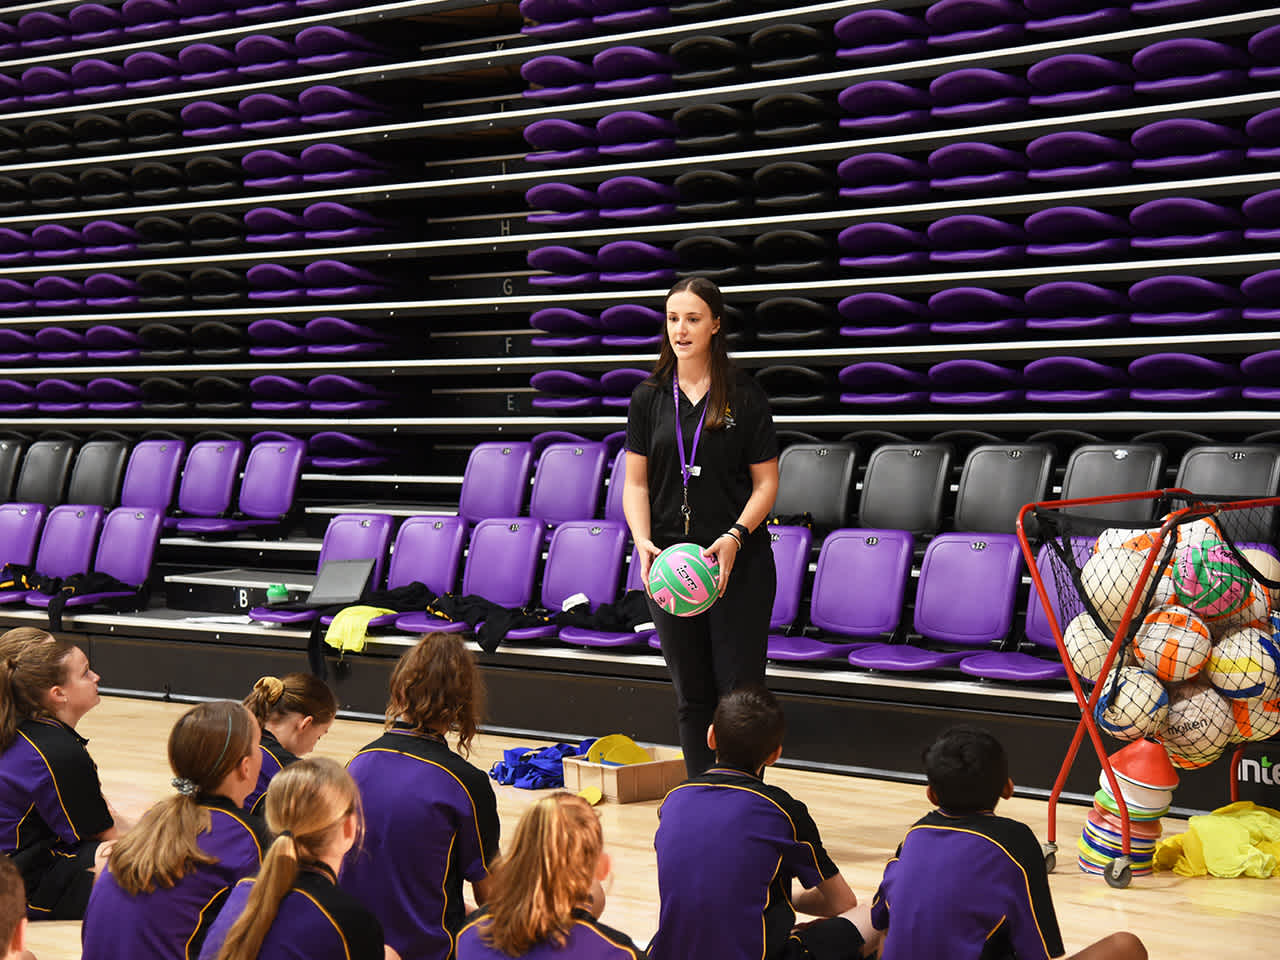 Teacher demonstrating netball drill to students on court